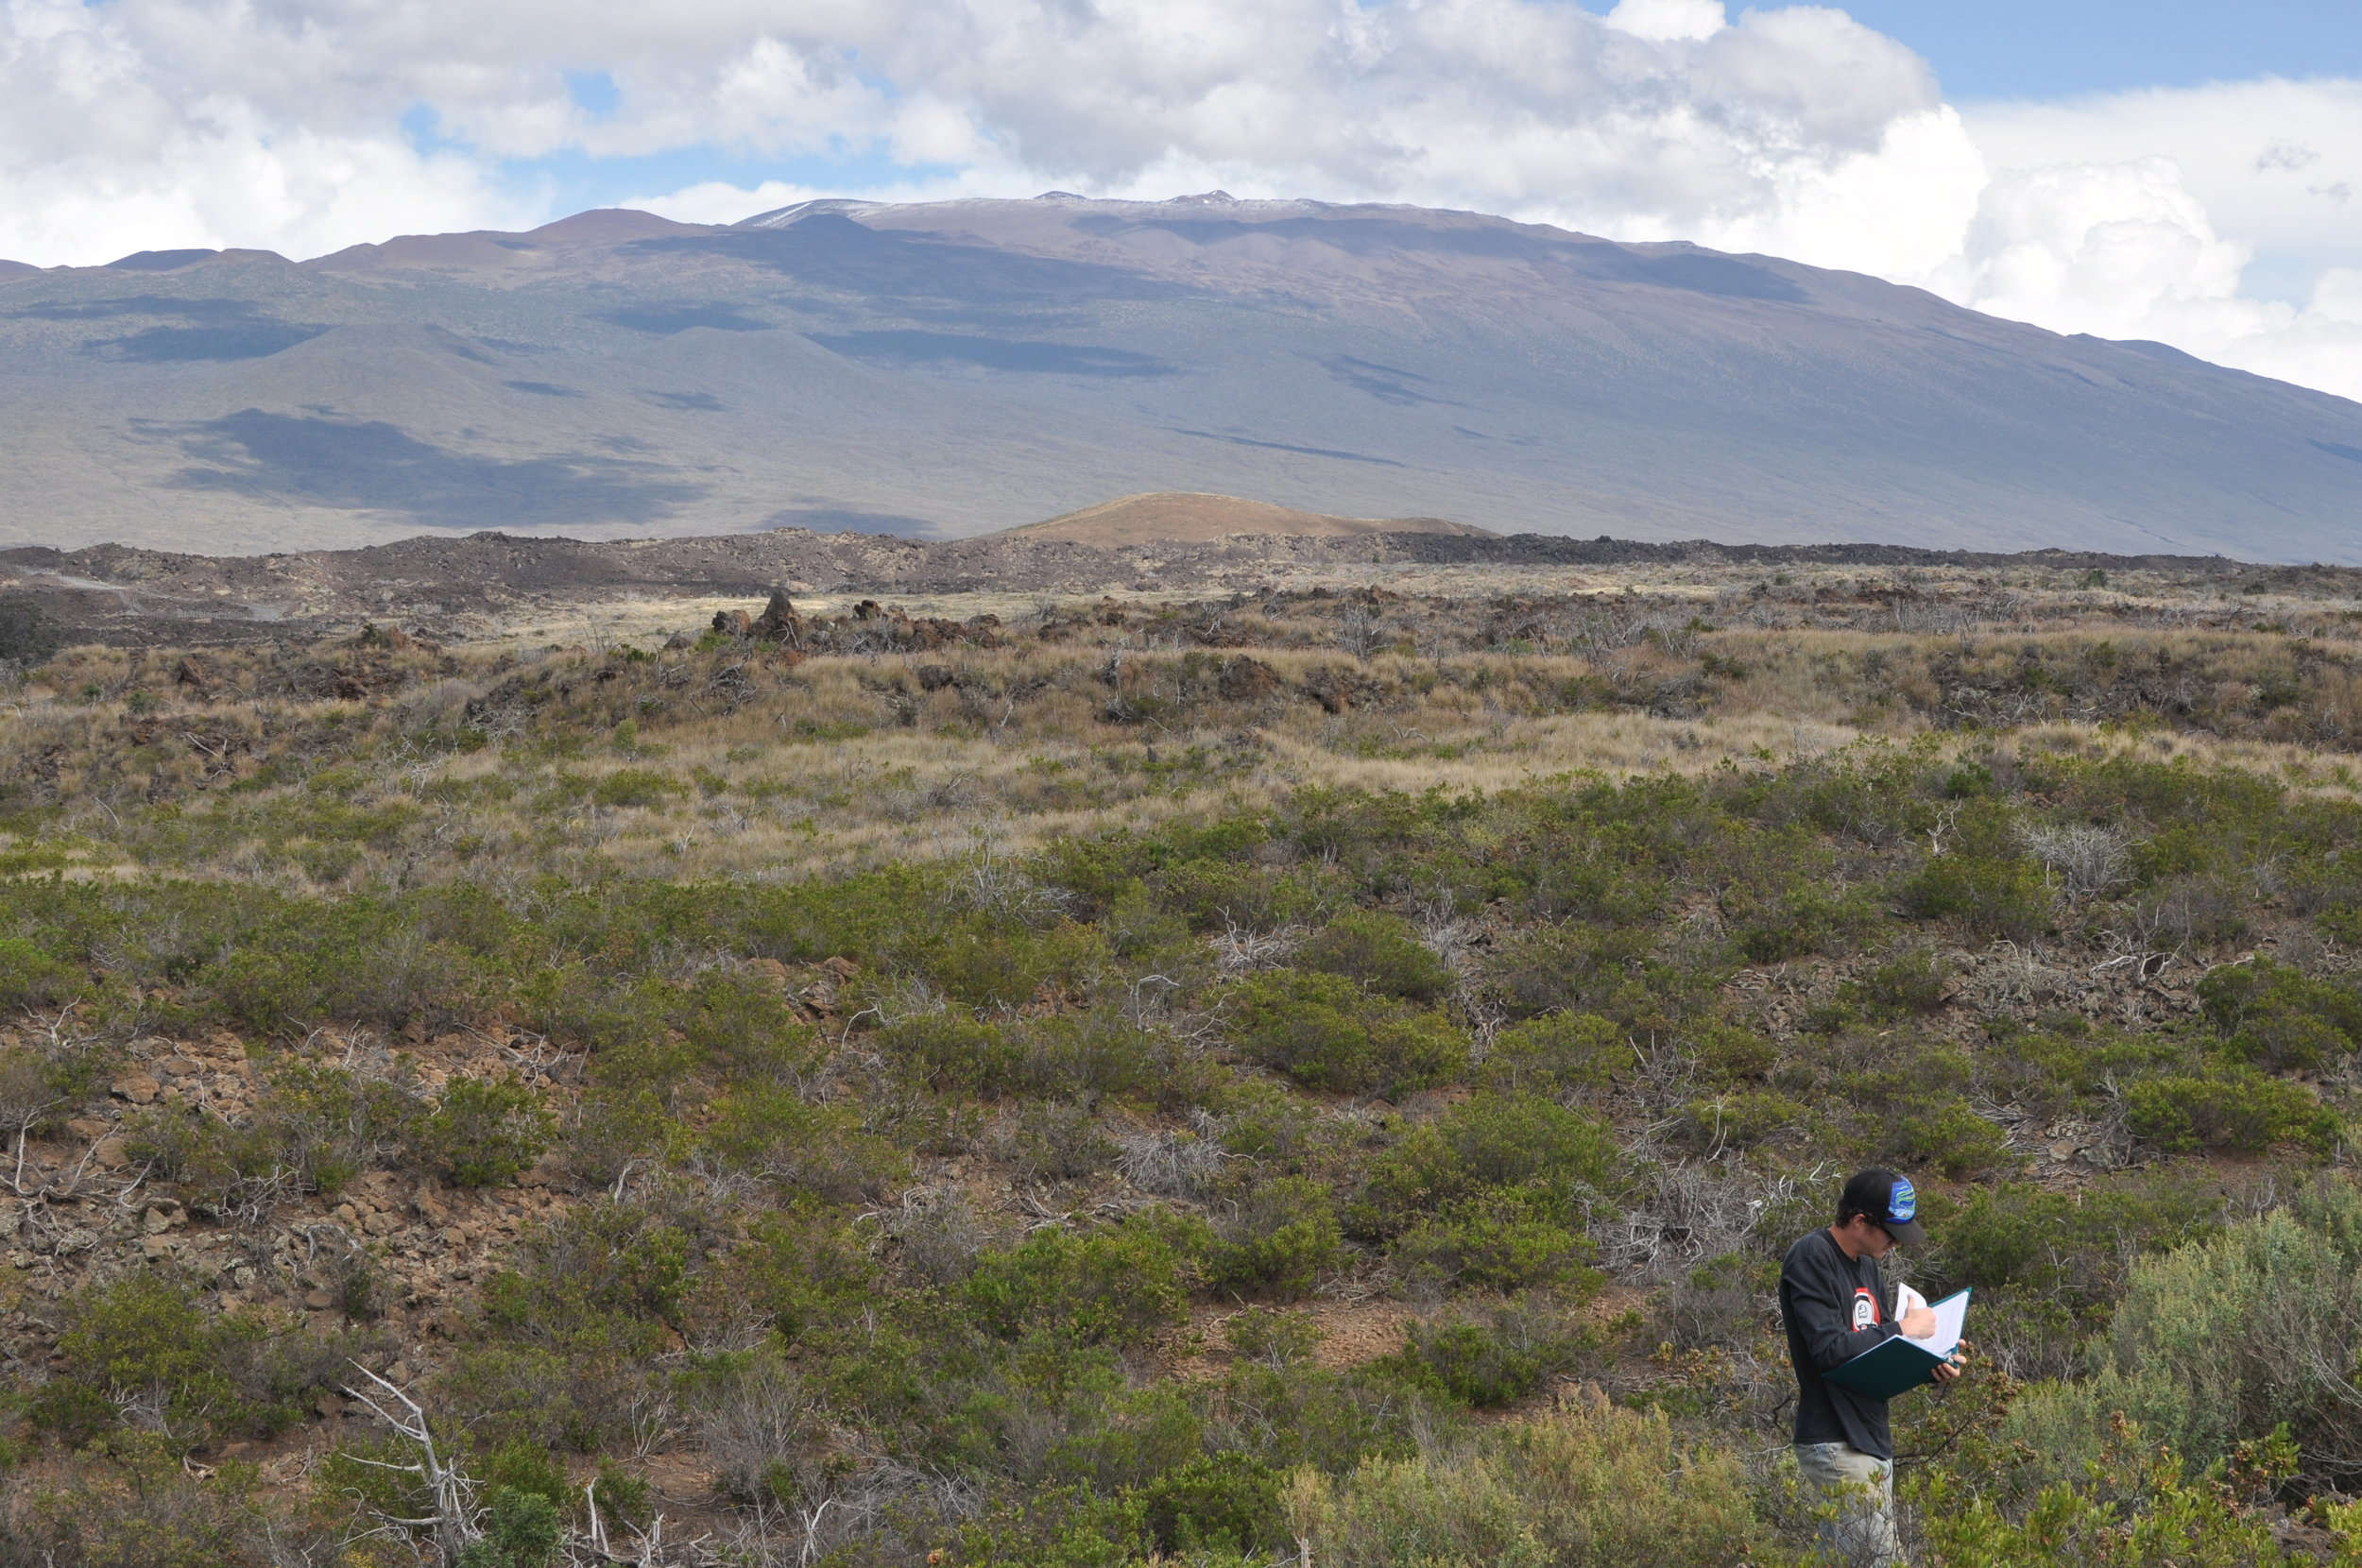 Jeff taking collection notes at PTA with Mauna Kea in the background.